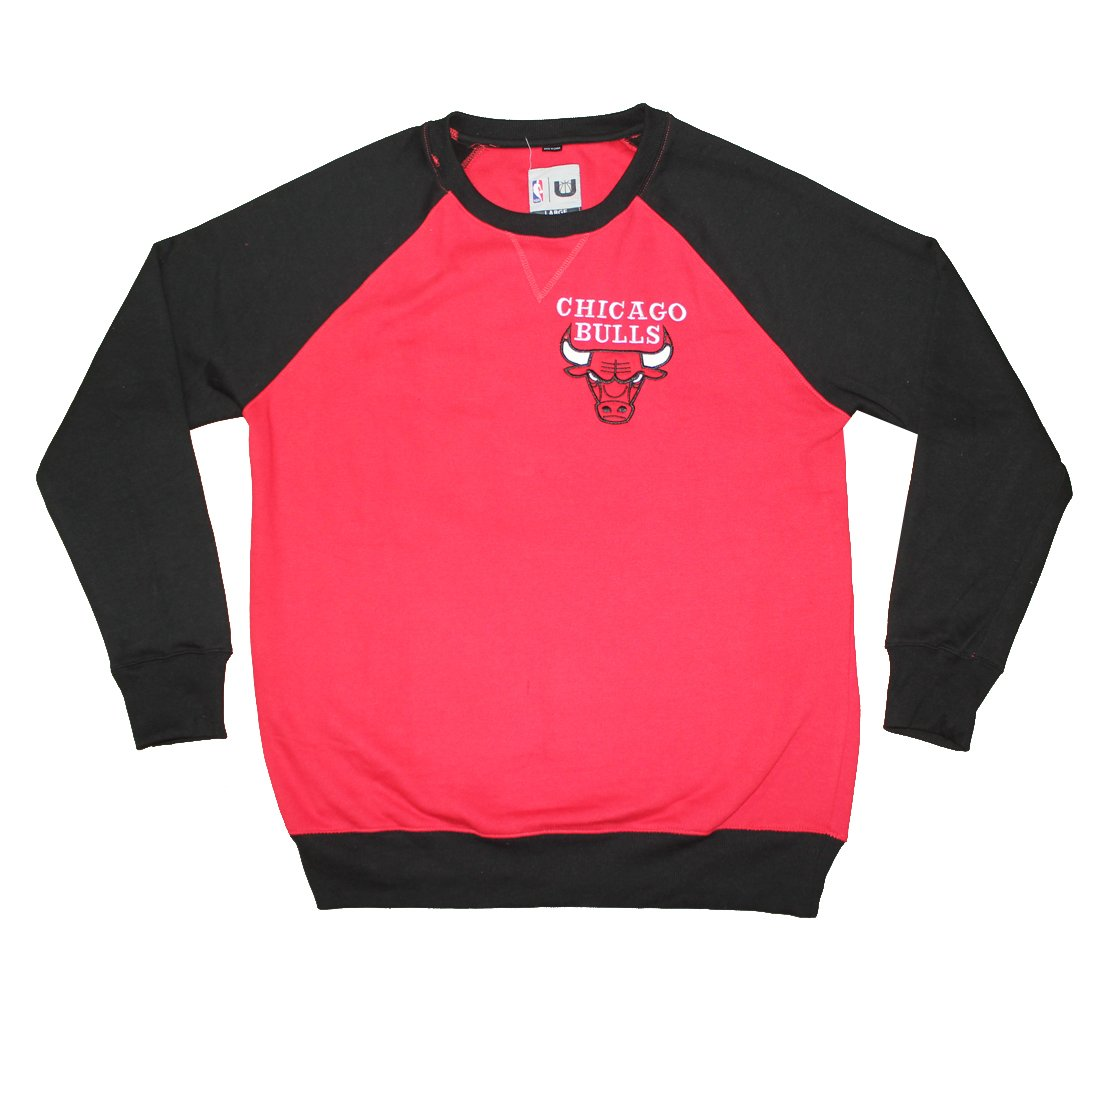 BIG & TALL NBA Mens CHICAGO BULLS: Athletic Pullover Sweatshirt 2XL Multicolor by NBA